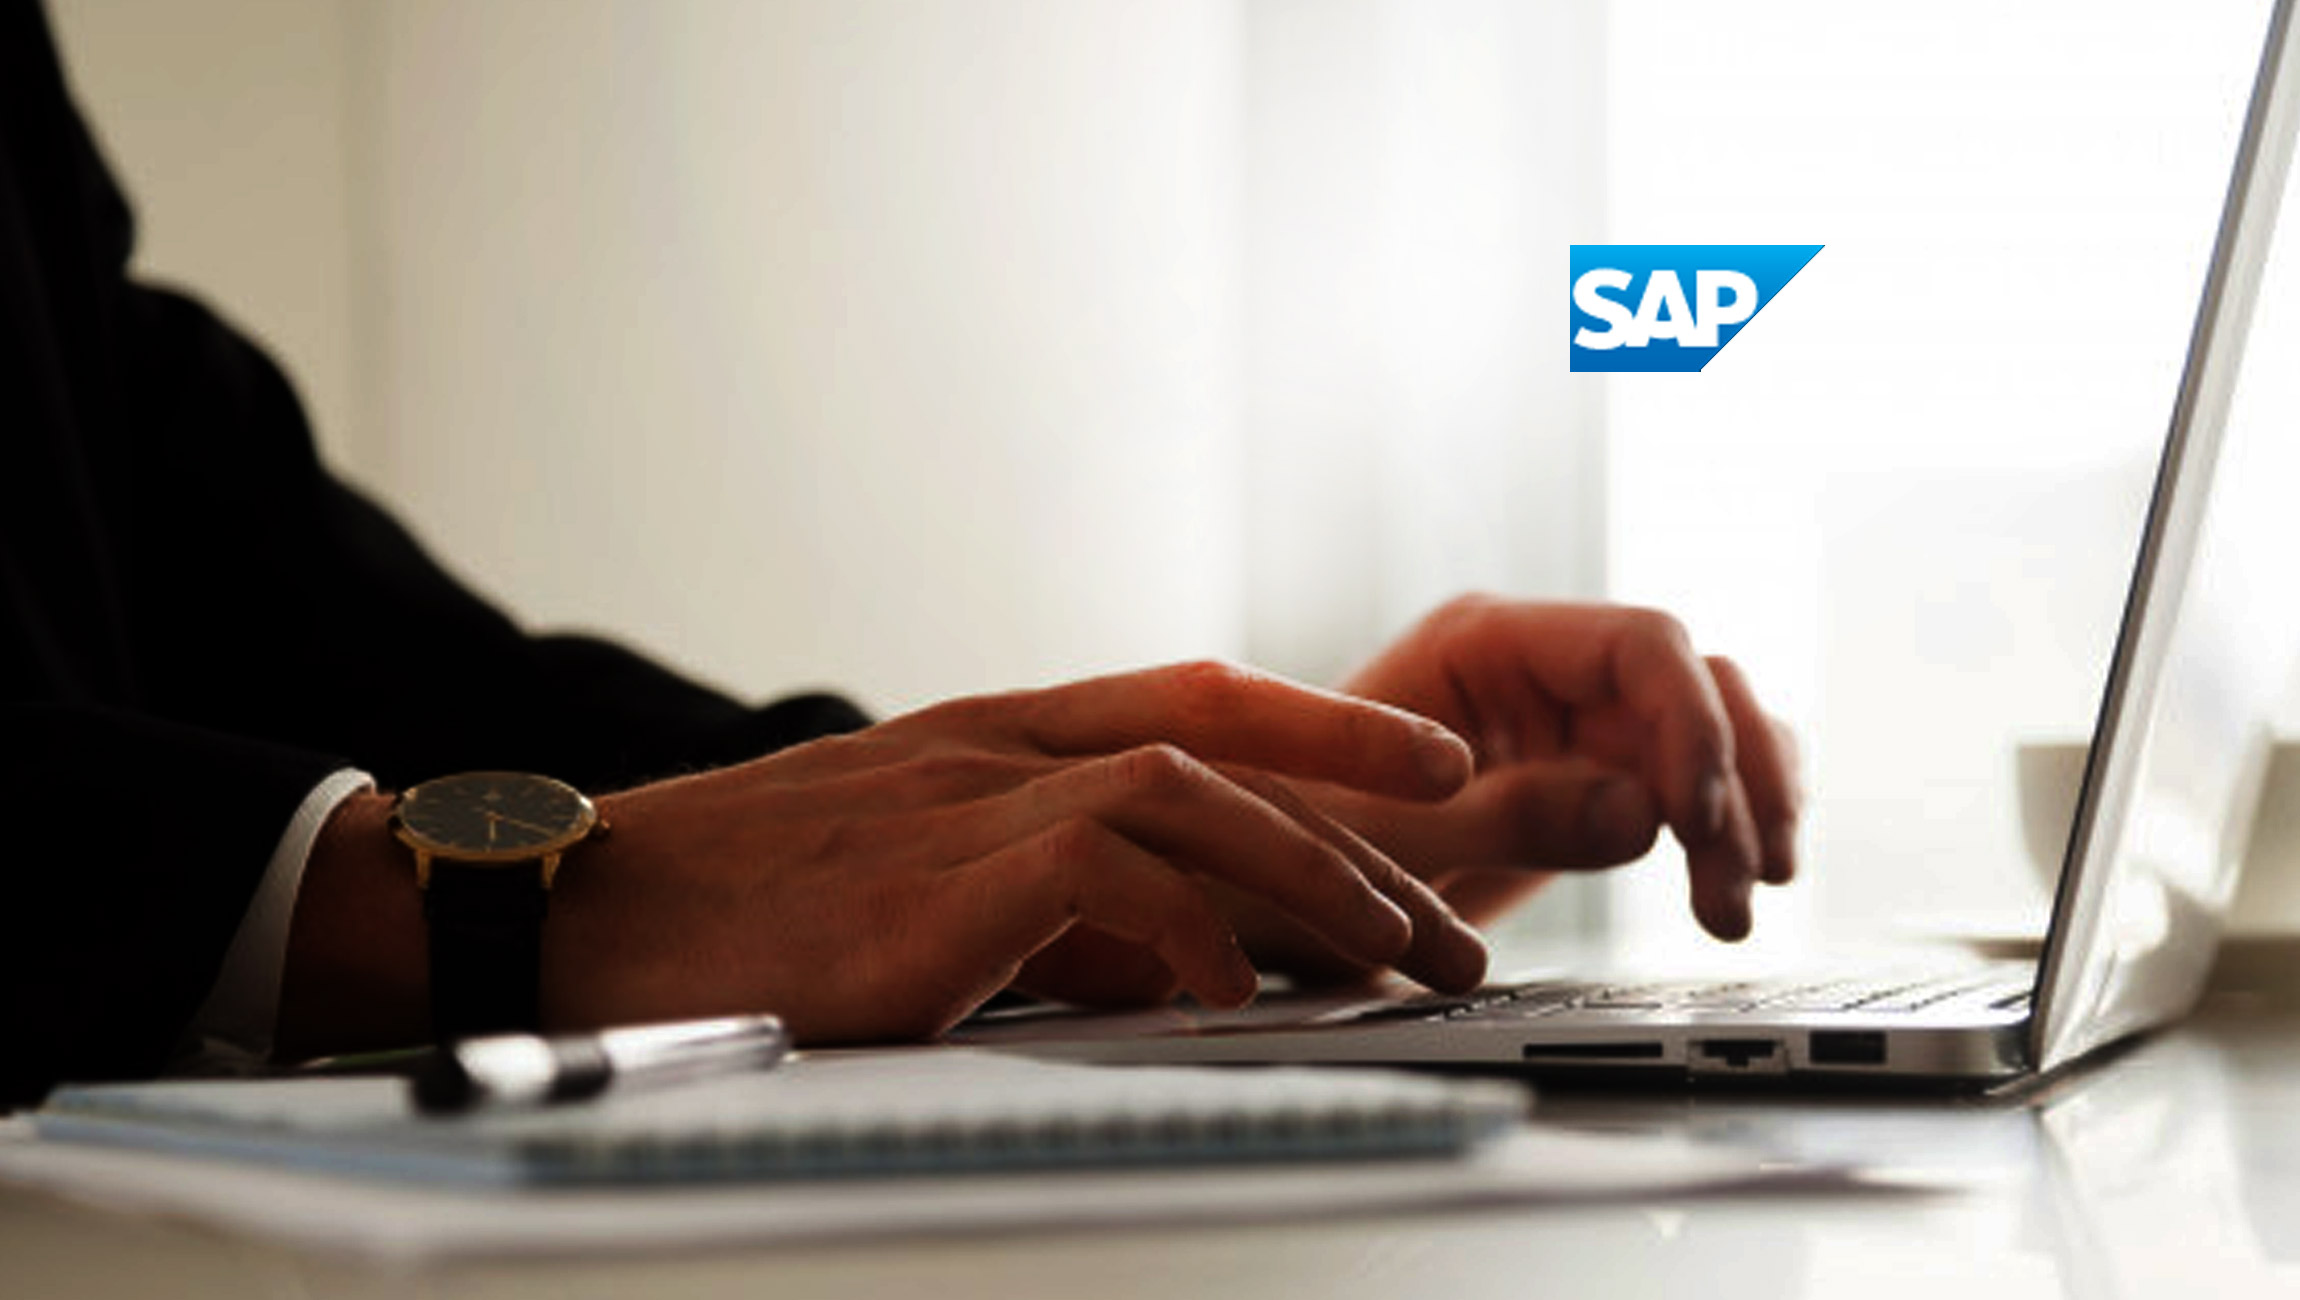 More-Than-1_100-Deployments-of-Procurement-Solutions-From-SAP-in-2020-Help-Companies-Transform-Spend-Management-and-Drive-Sustainable-Business